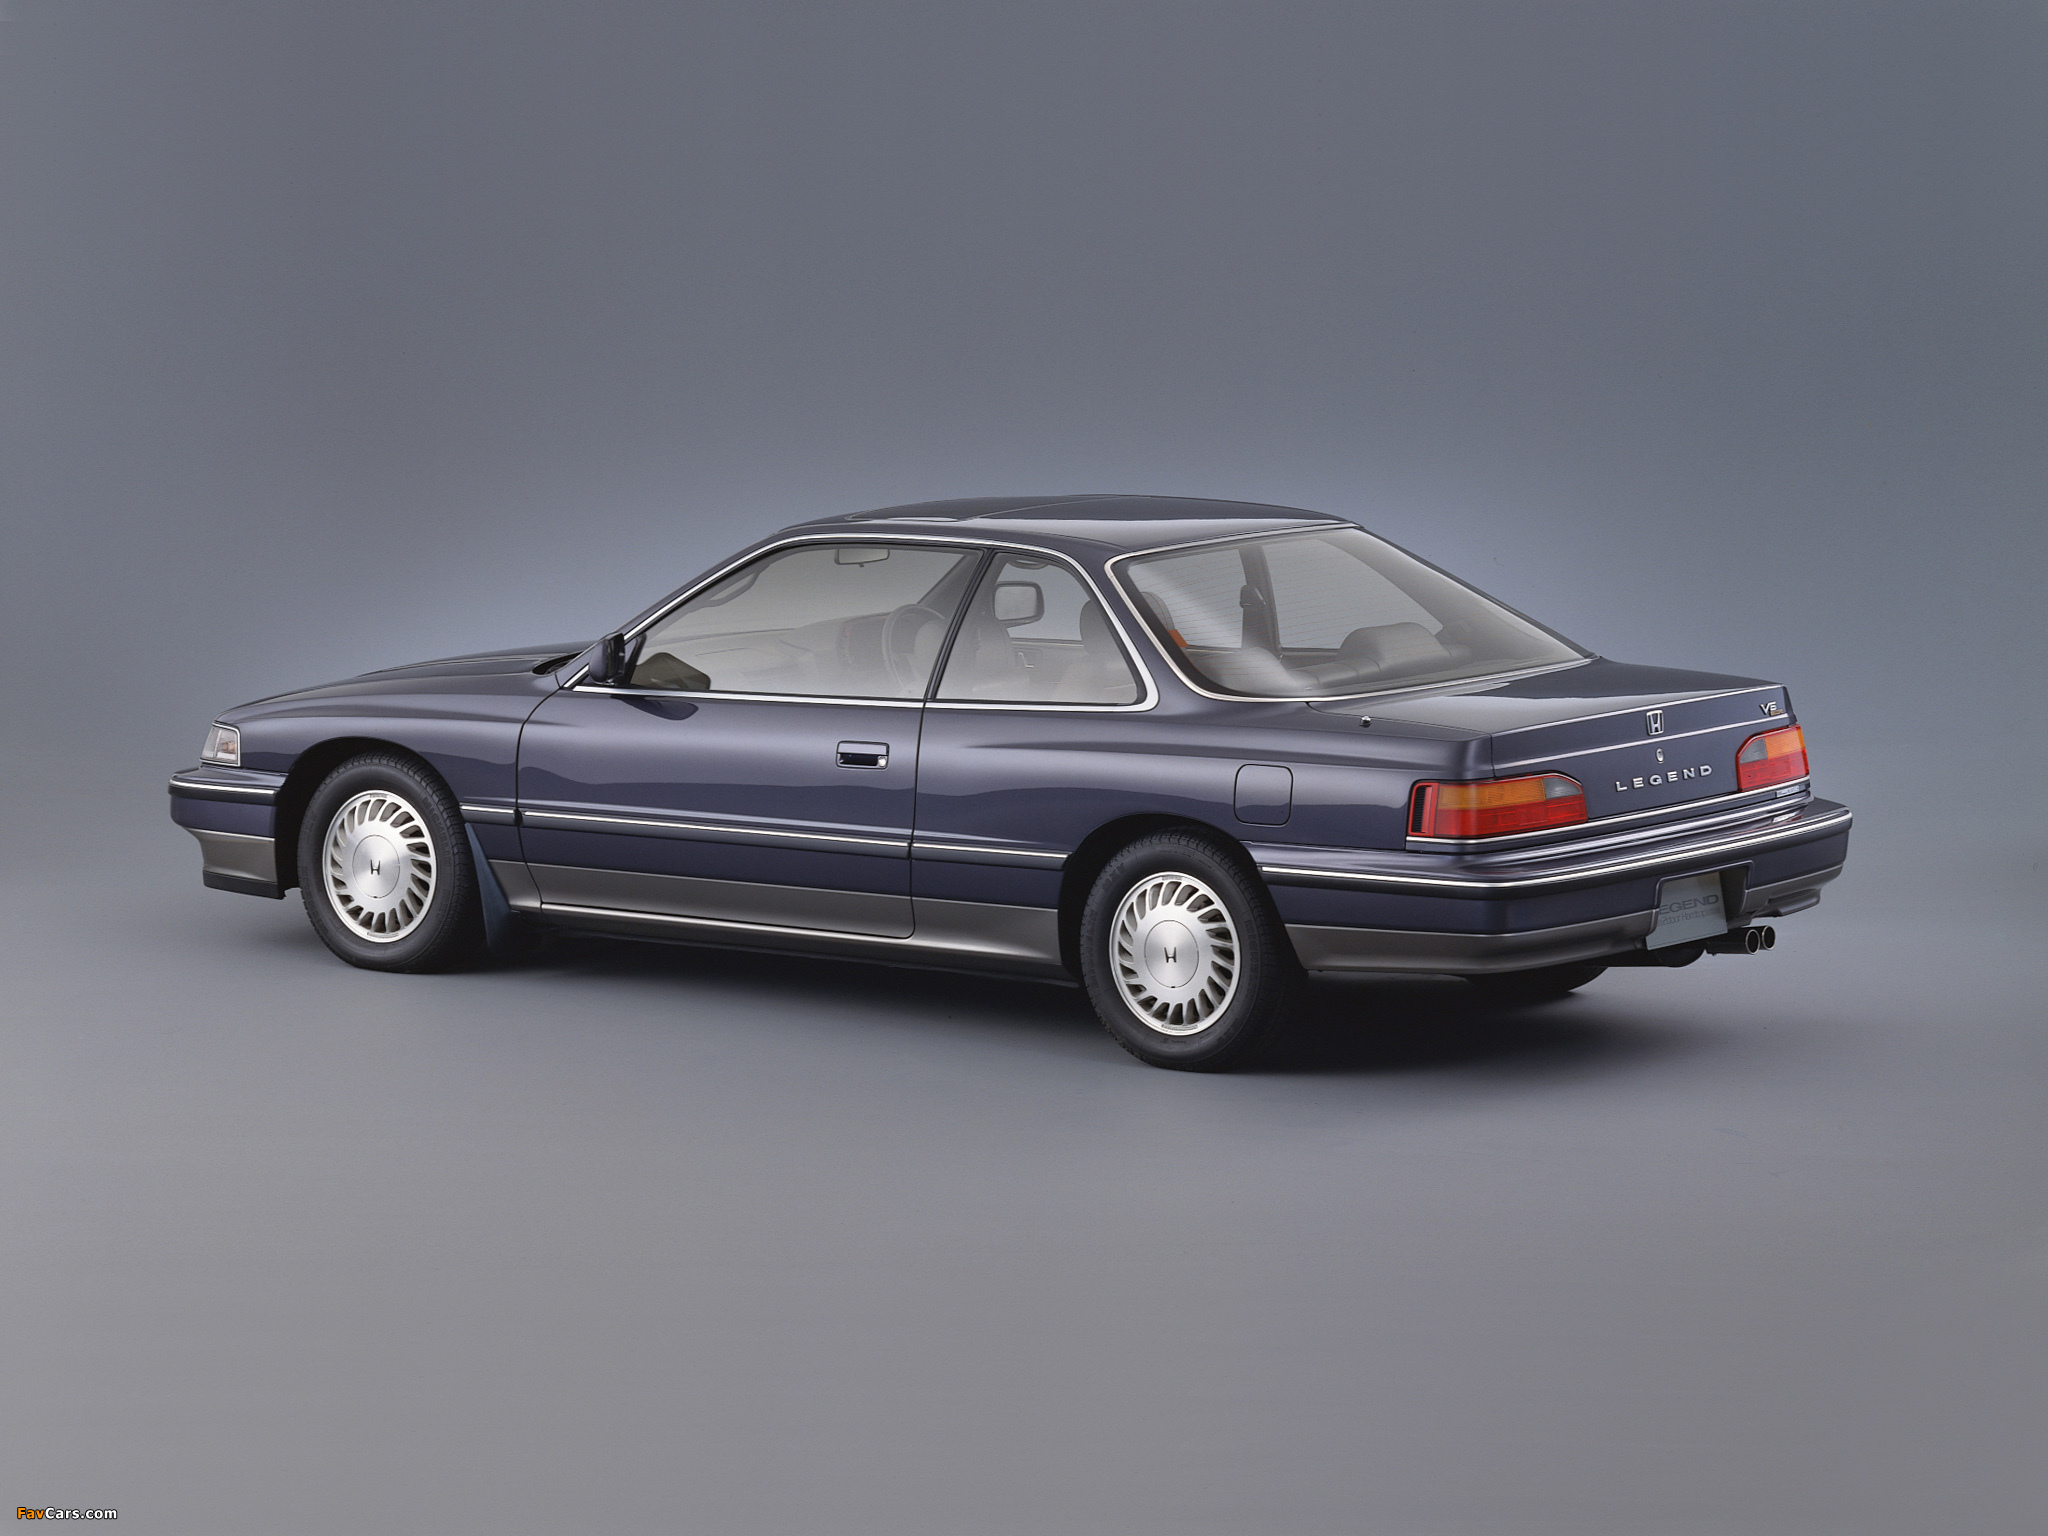 1987 Honda Legend #4